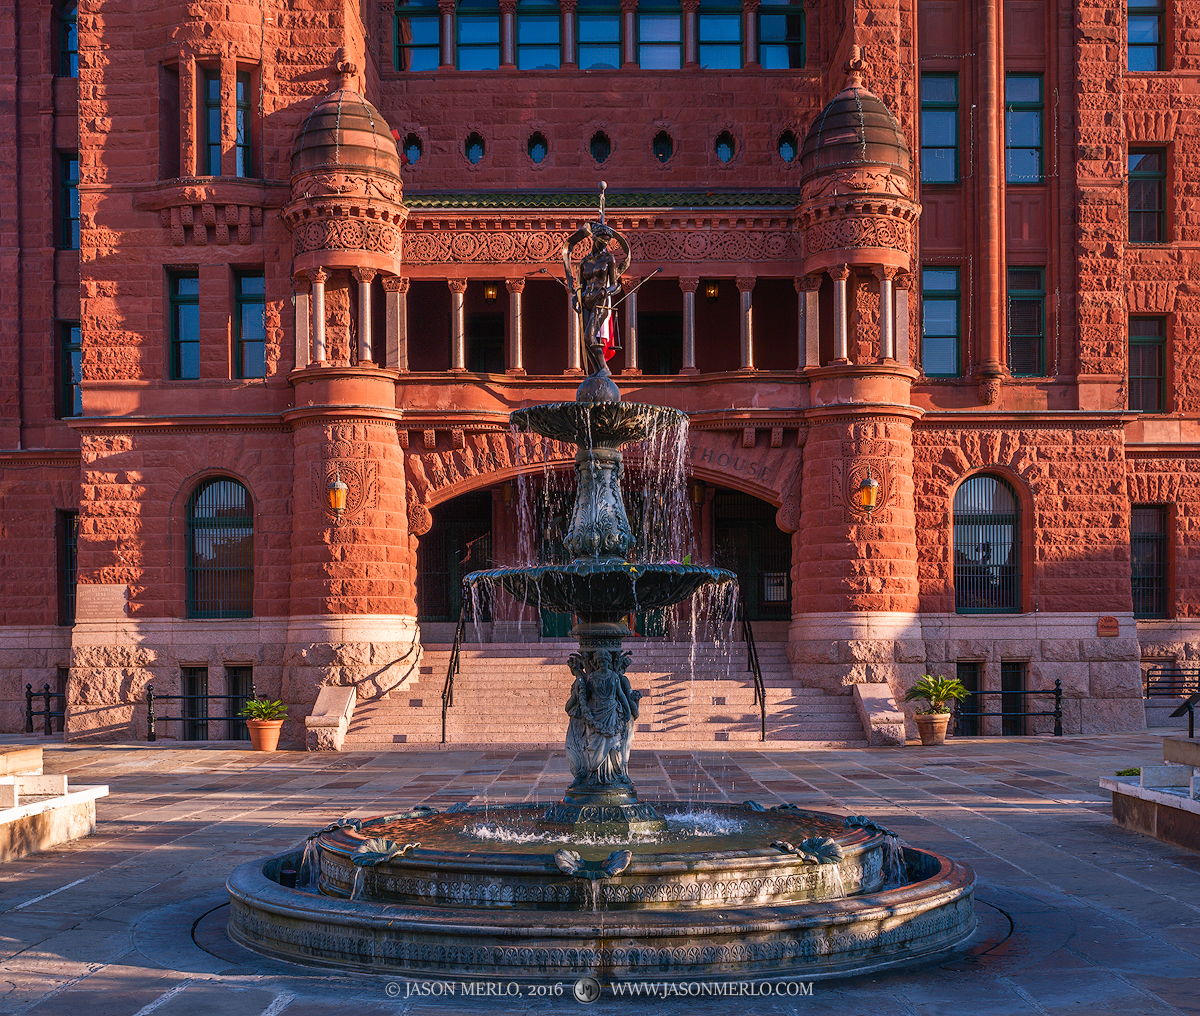 San Antonio, Bexar County courthouse, Texas county courthouse, Lady Justice Fountain, photo